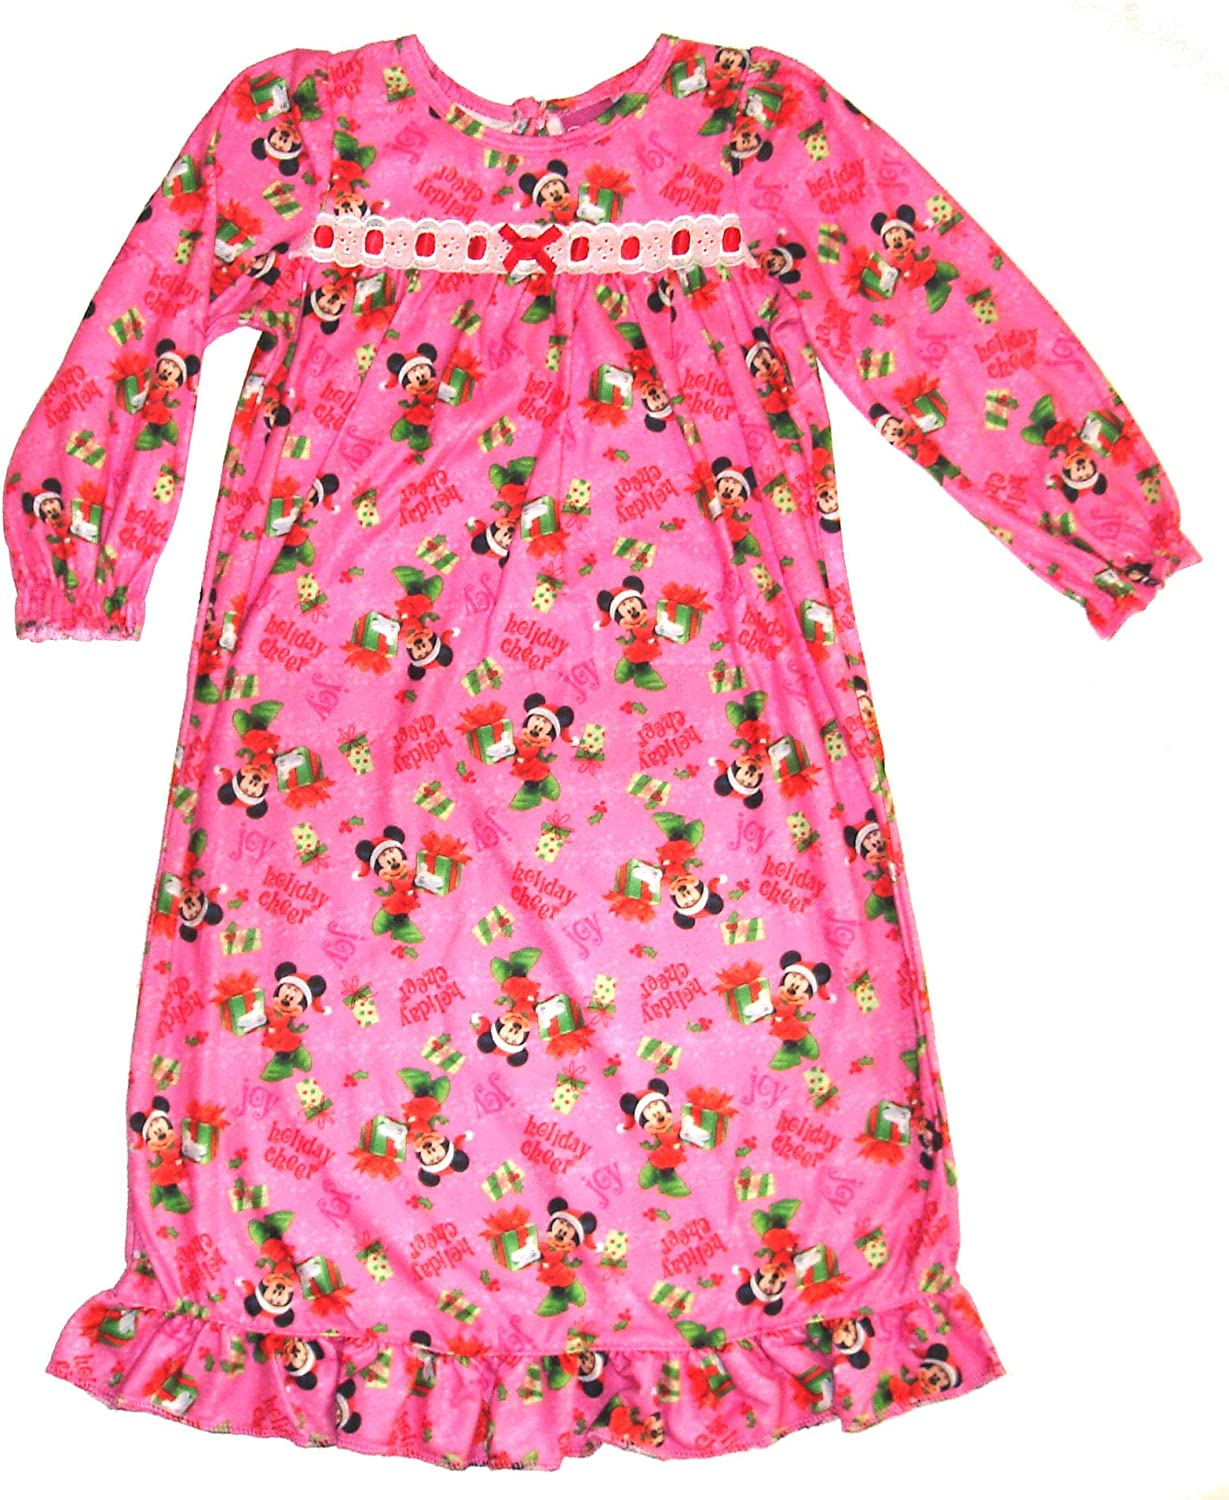 Minnie Mouse Disney's Holiday Cheer Flannel Nightgown~ Toddler 4T Pink